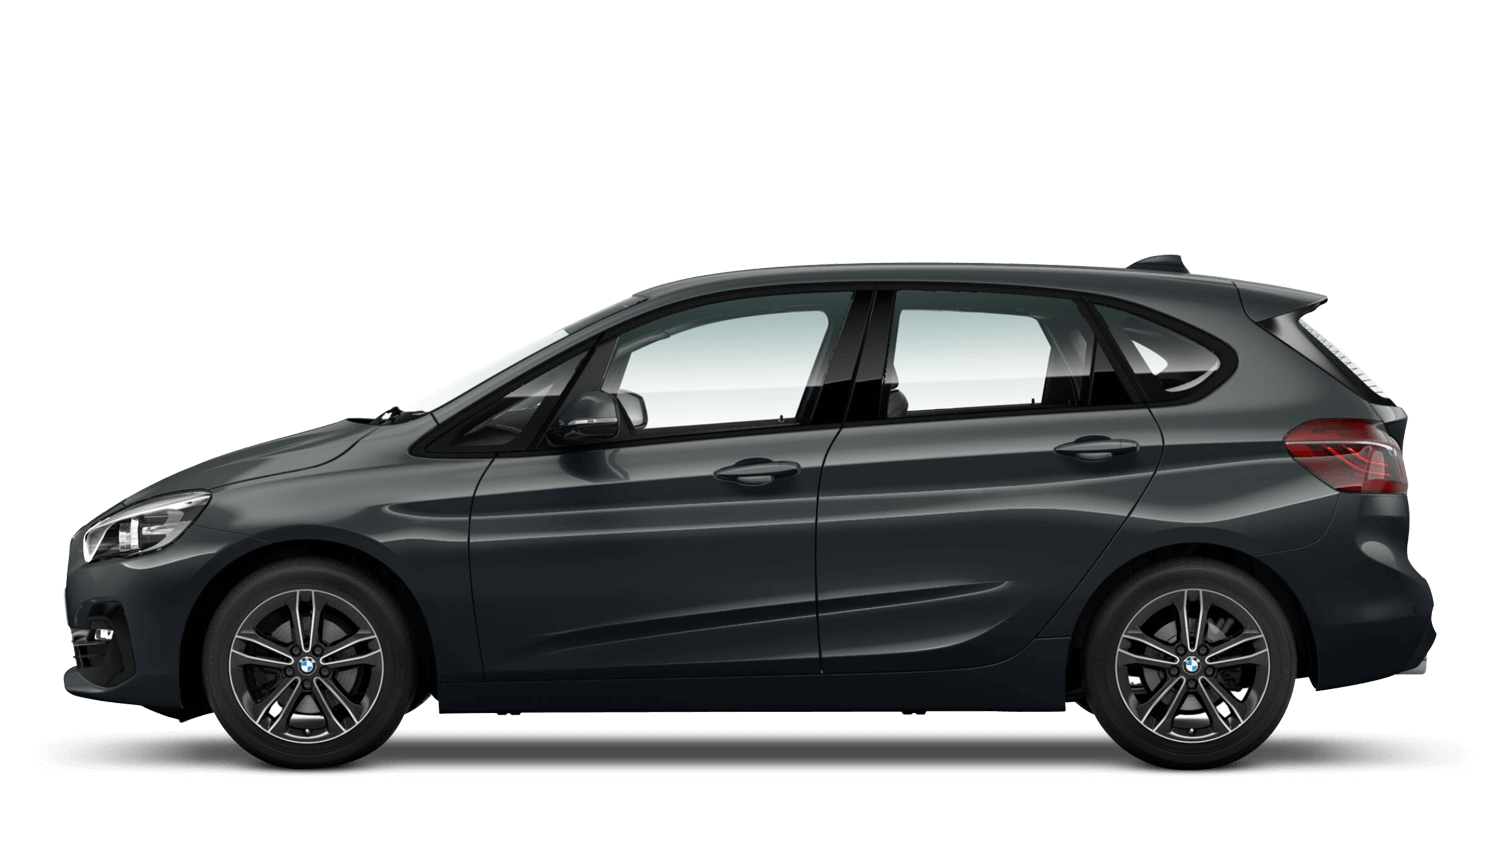 Mineral Grey (Metallic) BMW 2 Series Active Tourer